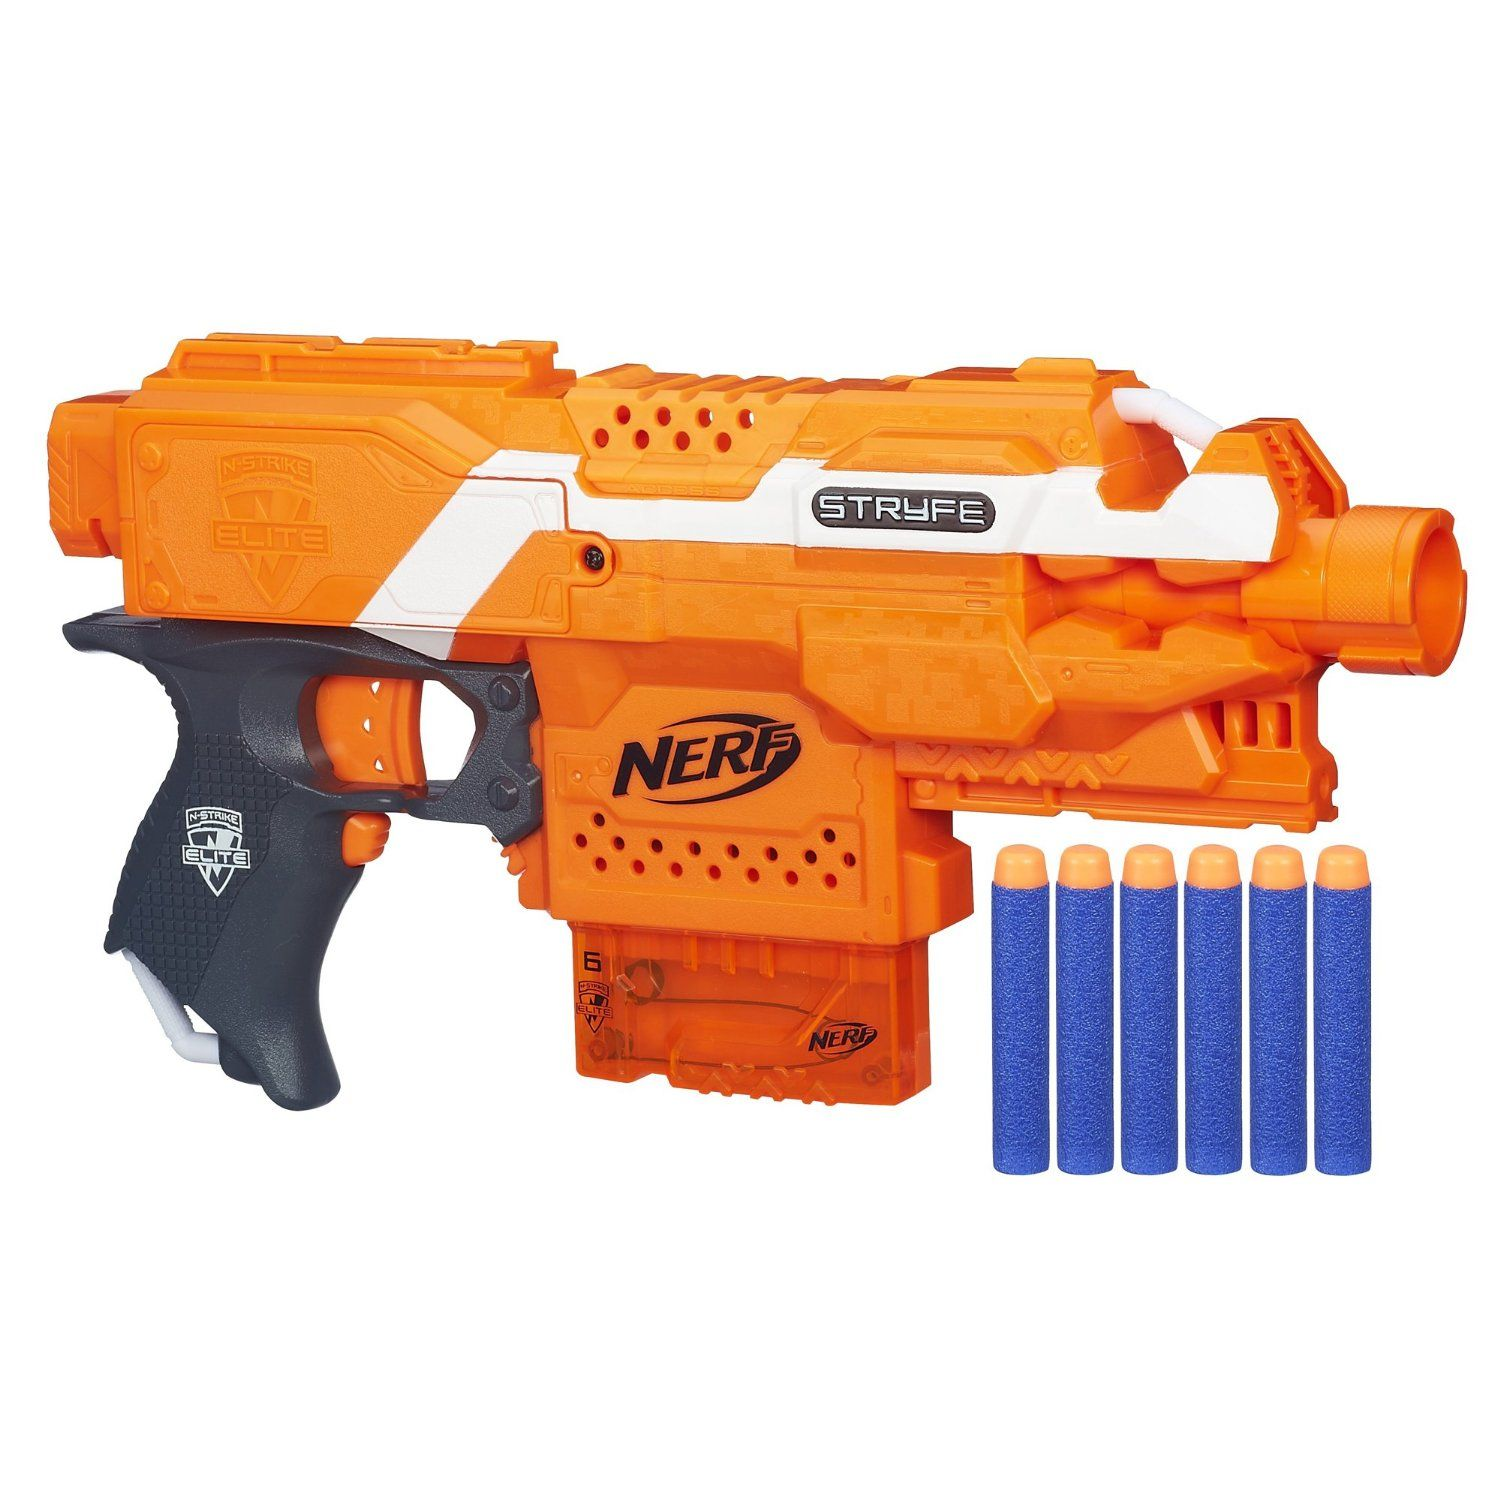 Black Friday 2014 Nerf N Strike Elite Stryfe Blaster Colors may Vary from Nerf Cyber Monday Black Friday specials on the season most wanted Christmas